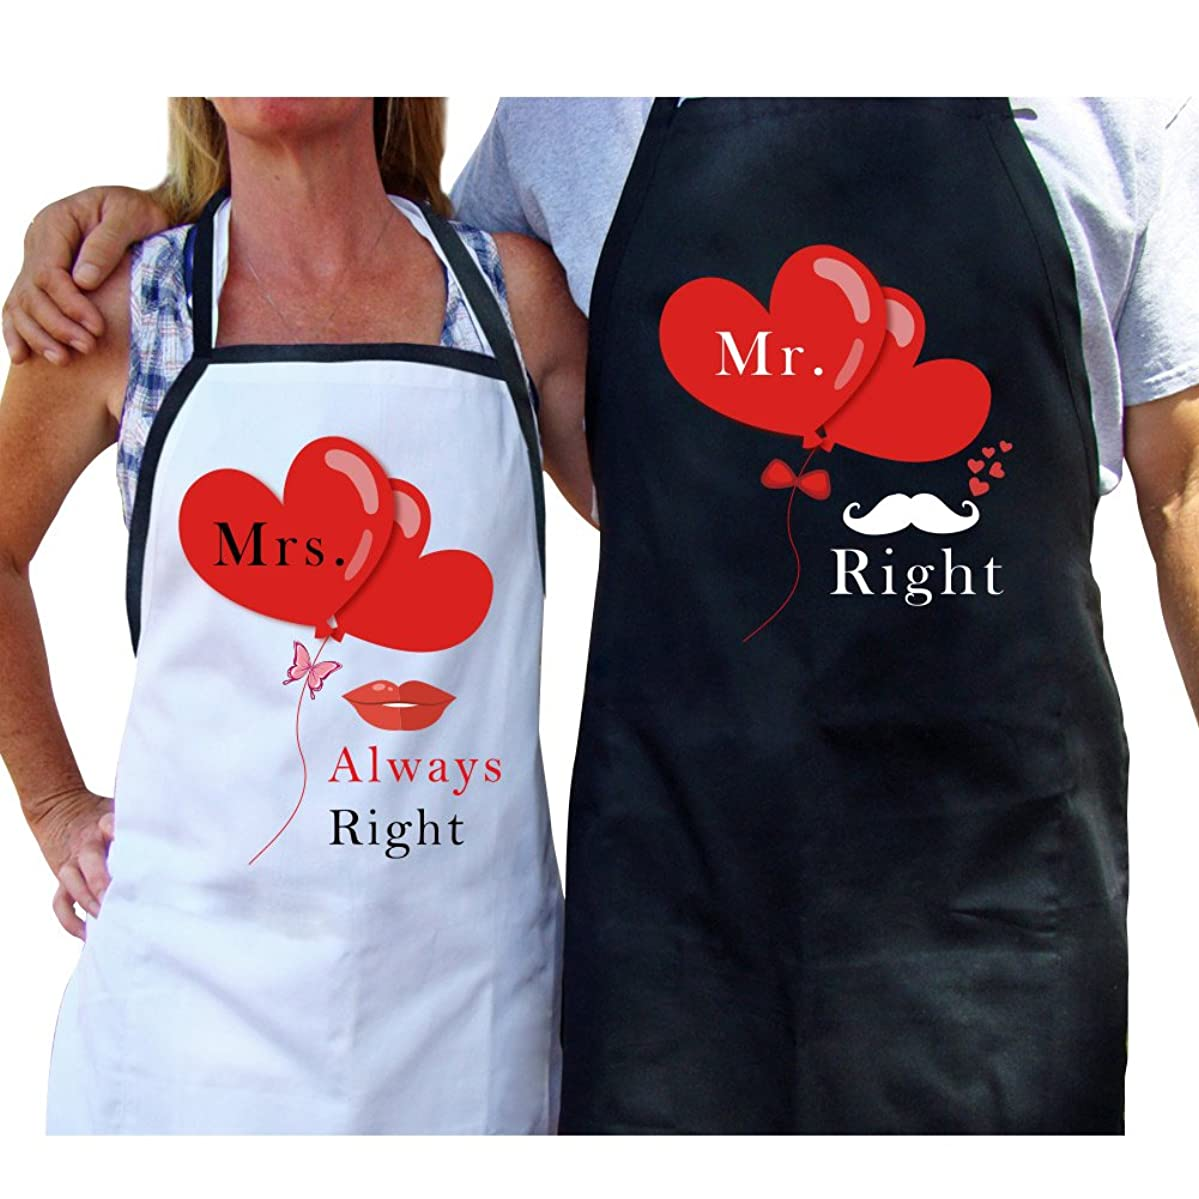 AerWo Mr. and Mrs. Aprons, Latest Couple Matching Aprons for His Hers Wedding Gift and Bridal Shower Gift for Couples. Perfect Engagement Gift and Kitchen Cooking Set